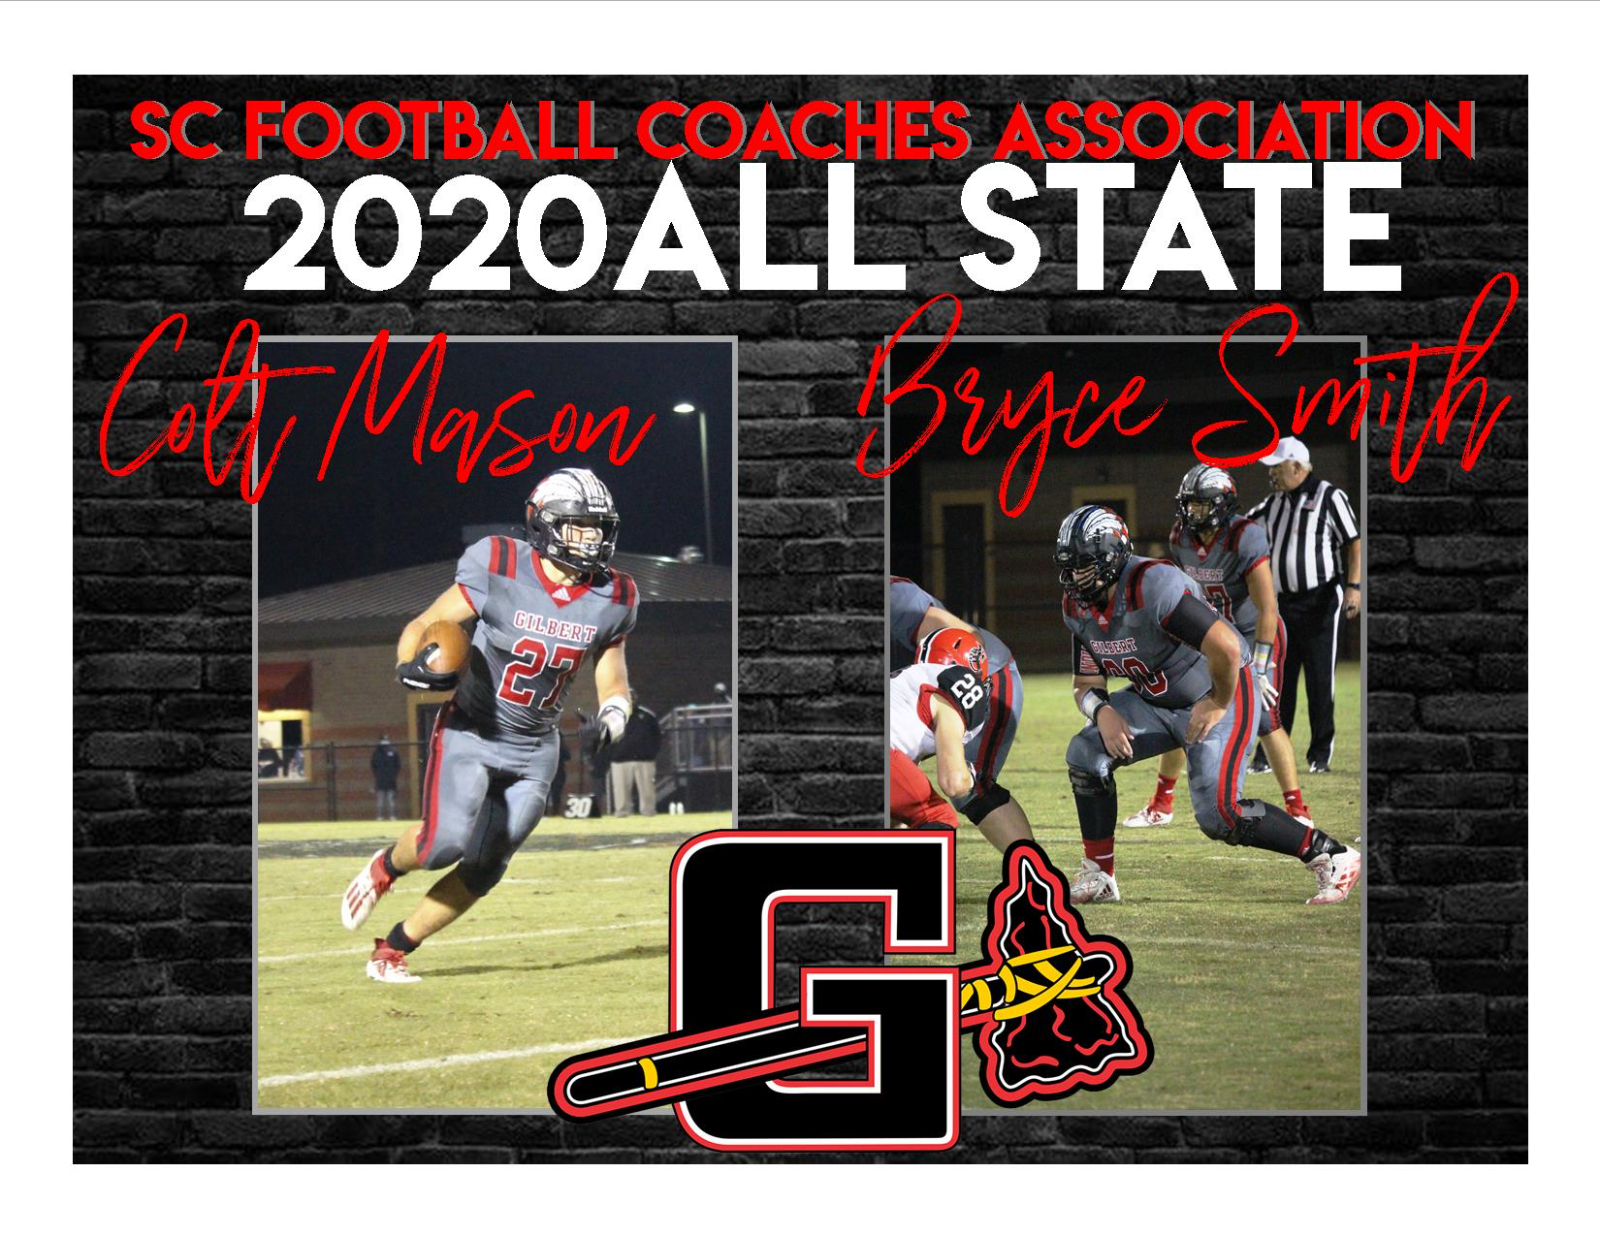 Congratulations Colt Mason and Bryce Smith 2020 SC Football Coaches Association All State Team